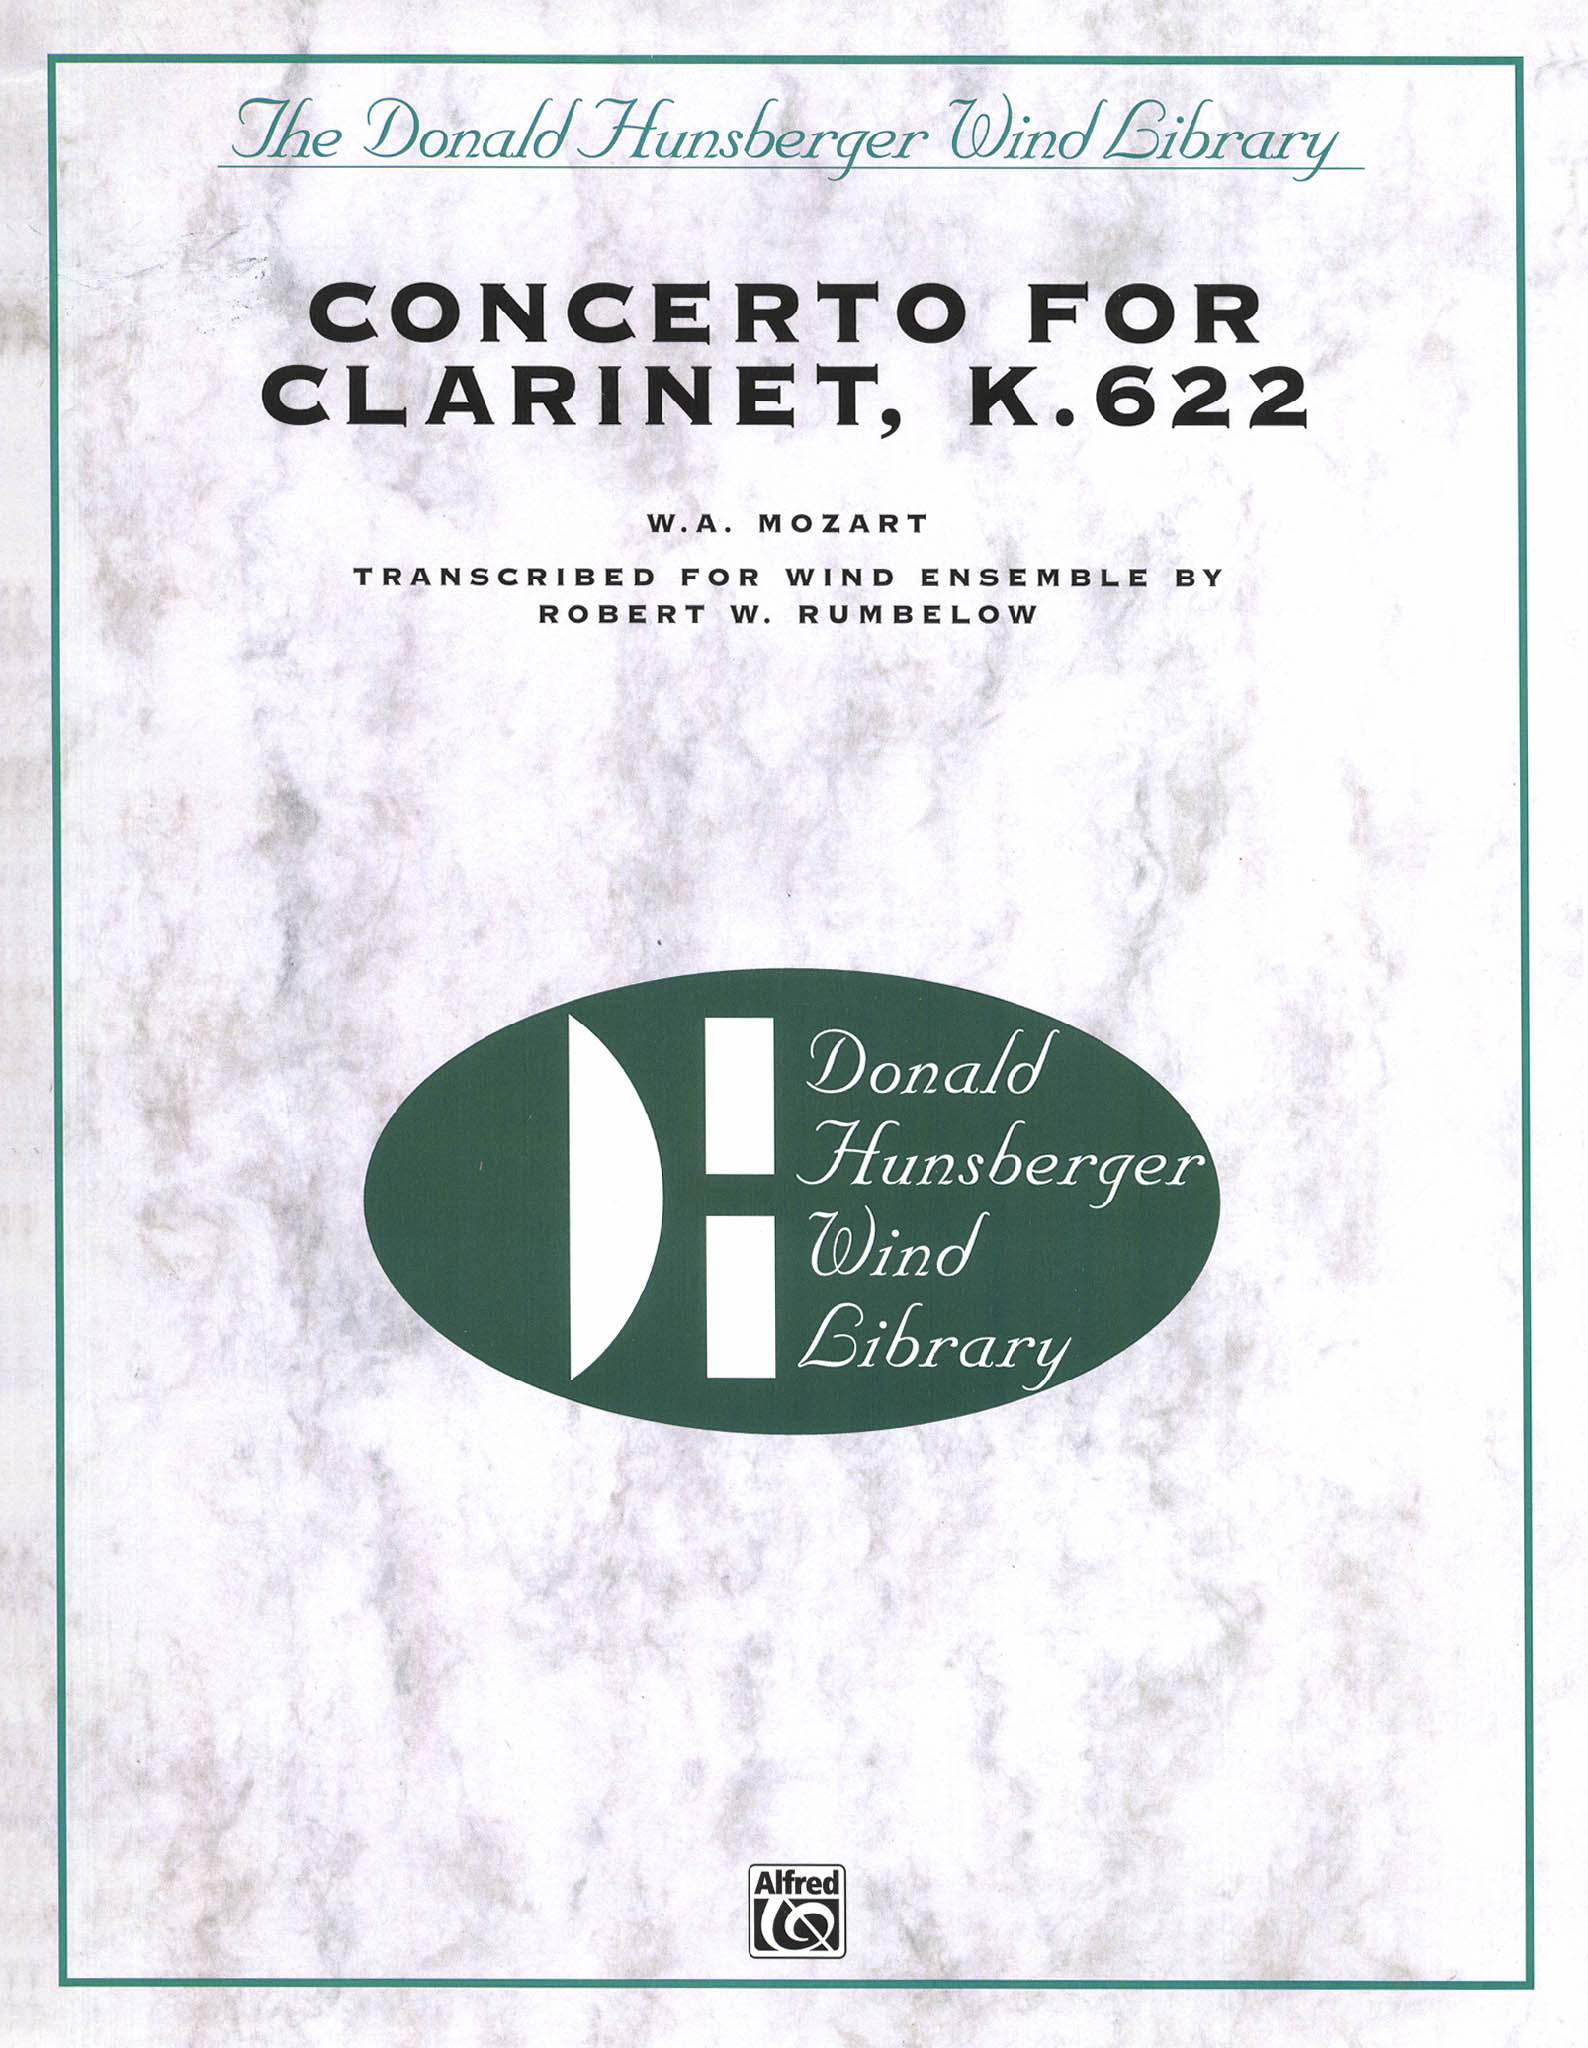 Mozart Clarinet Concerto for wind ensemble Score Cover